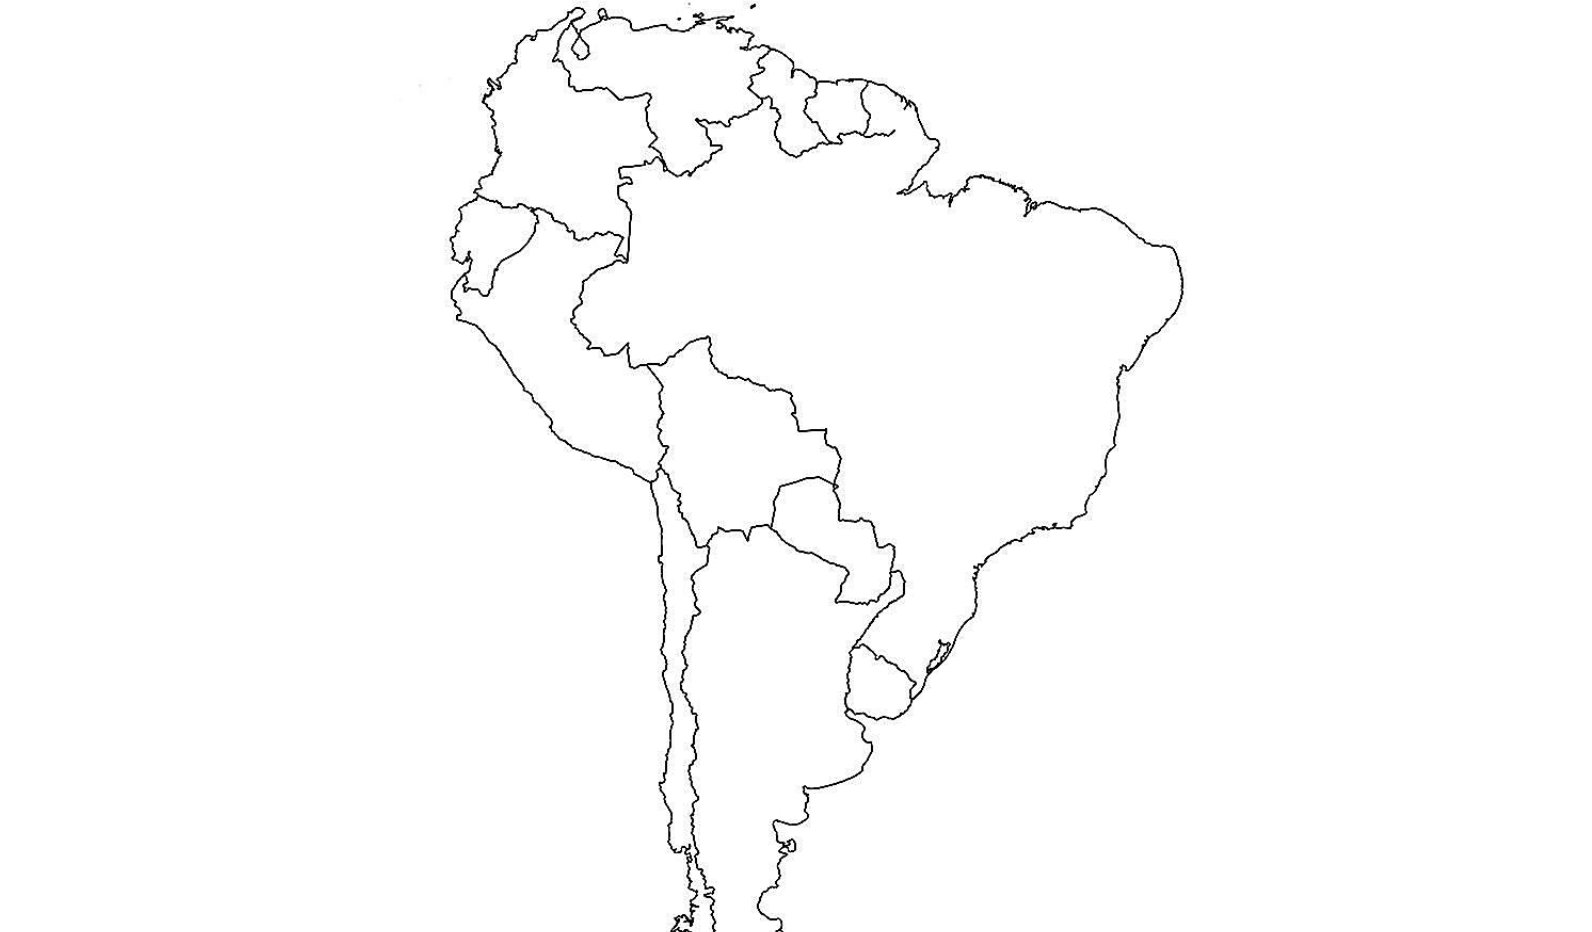 Map of South America | Know Your Meme